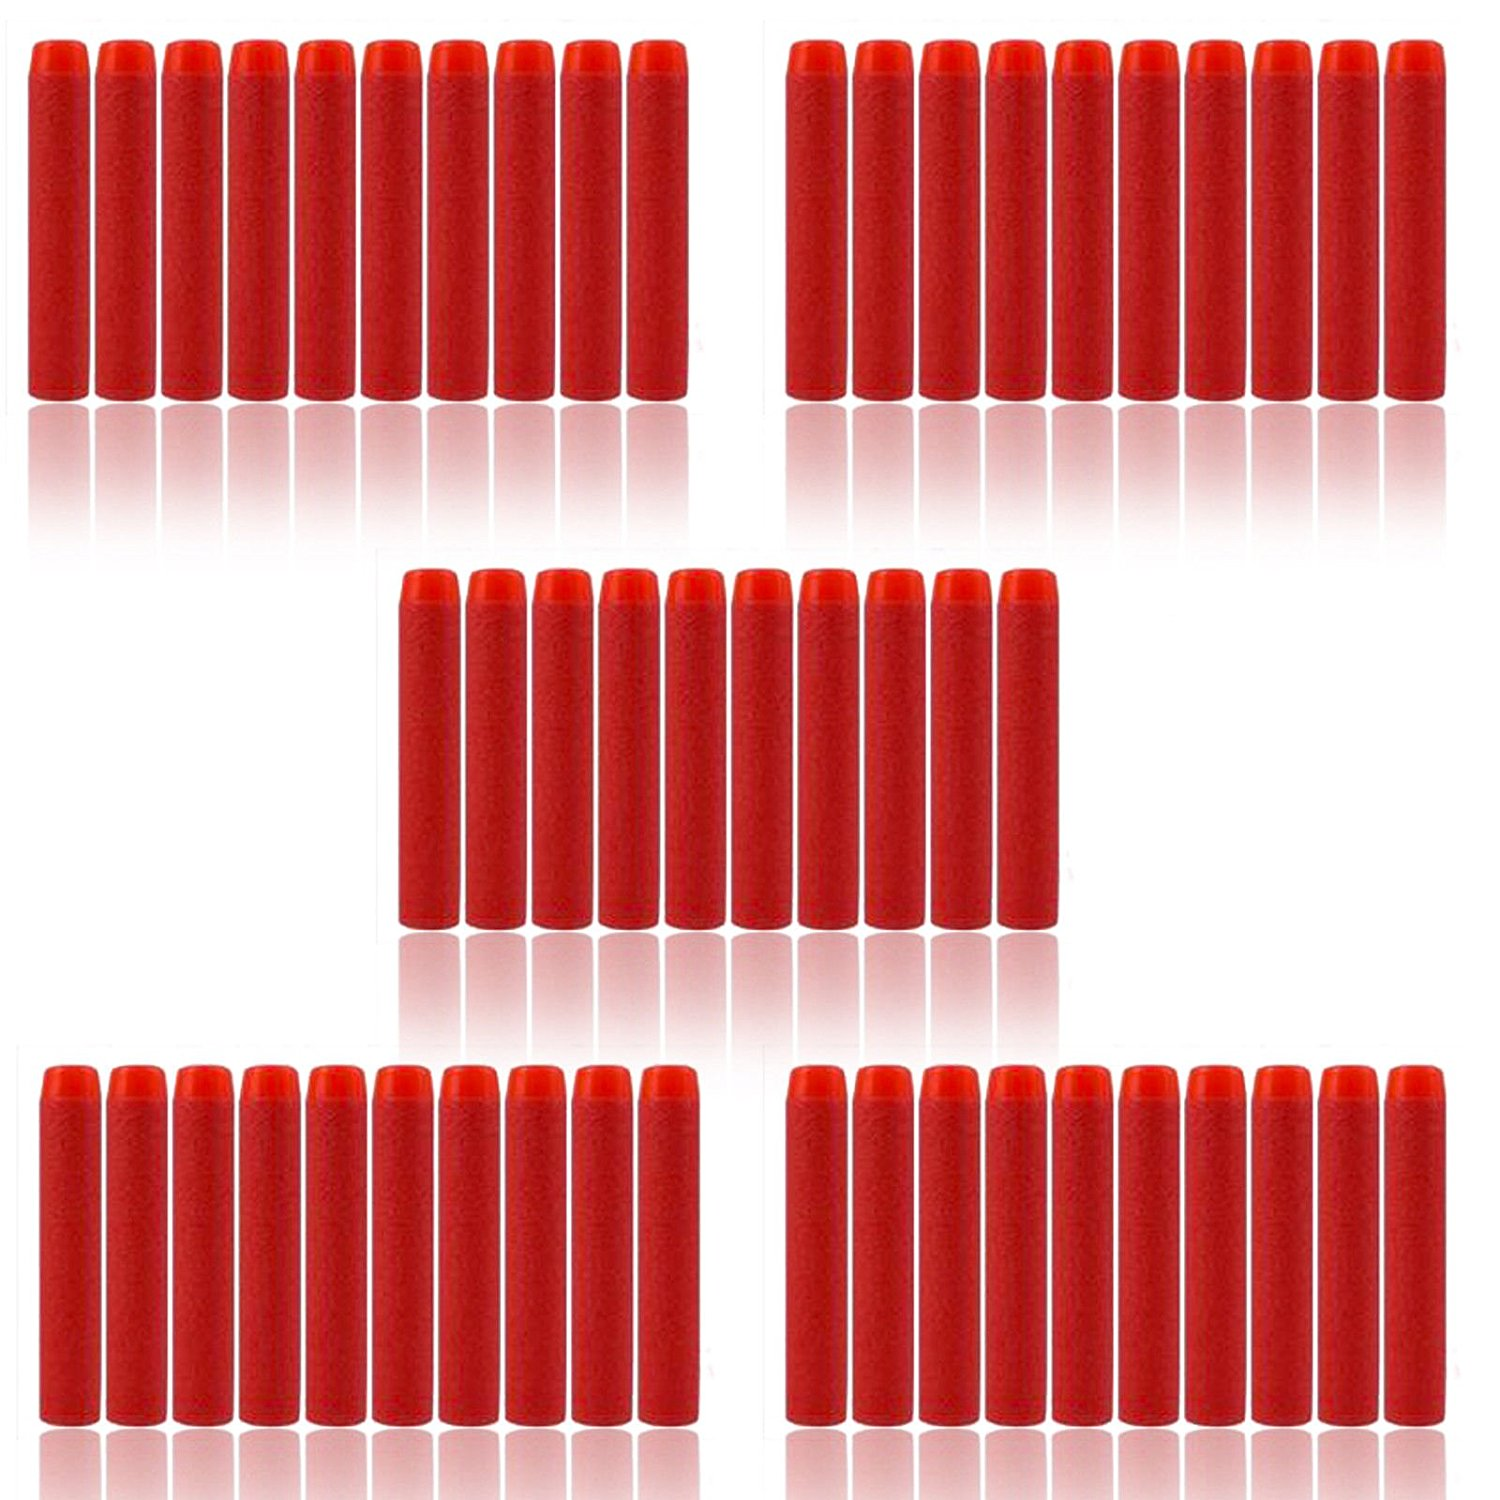 500Pcs 7.2x1.3 Cm Toys EVA Foam Soft Refill Bullet Darts for Nerf N-Strike Elite Series Blasters,For Kid Toy Gun Fire Blaster